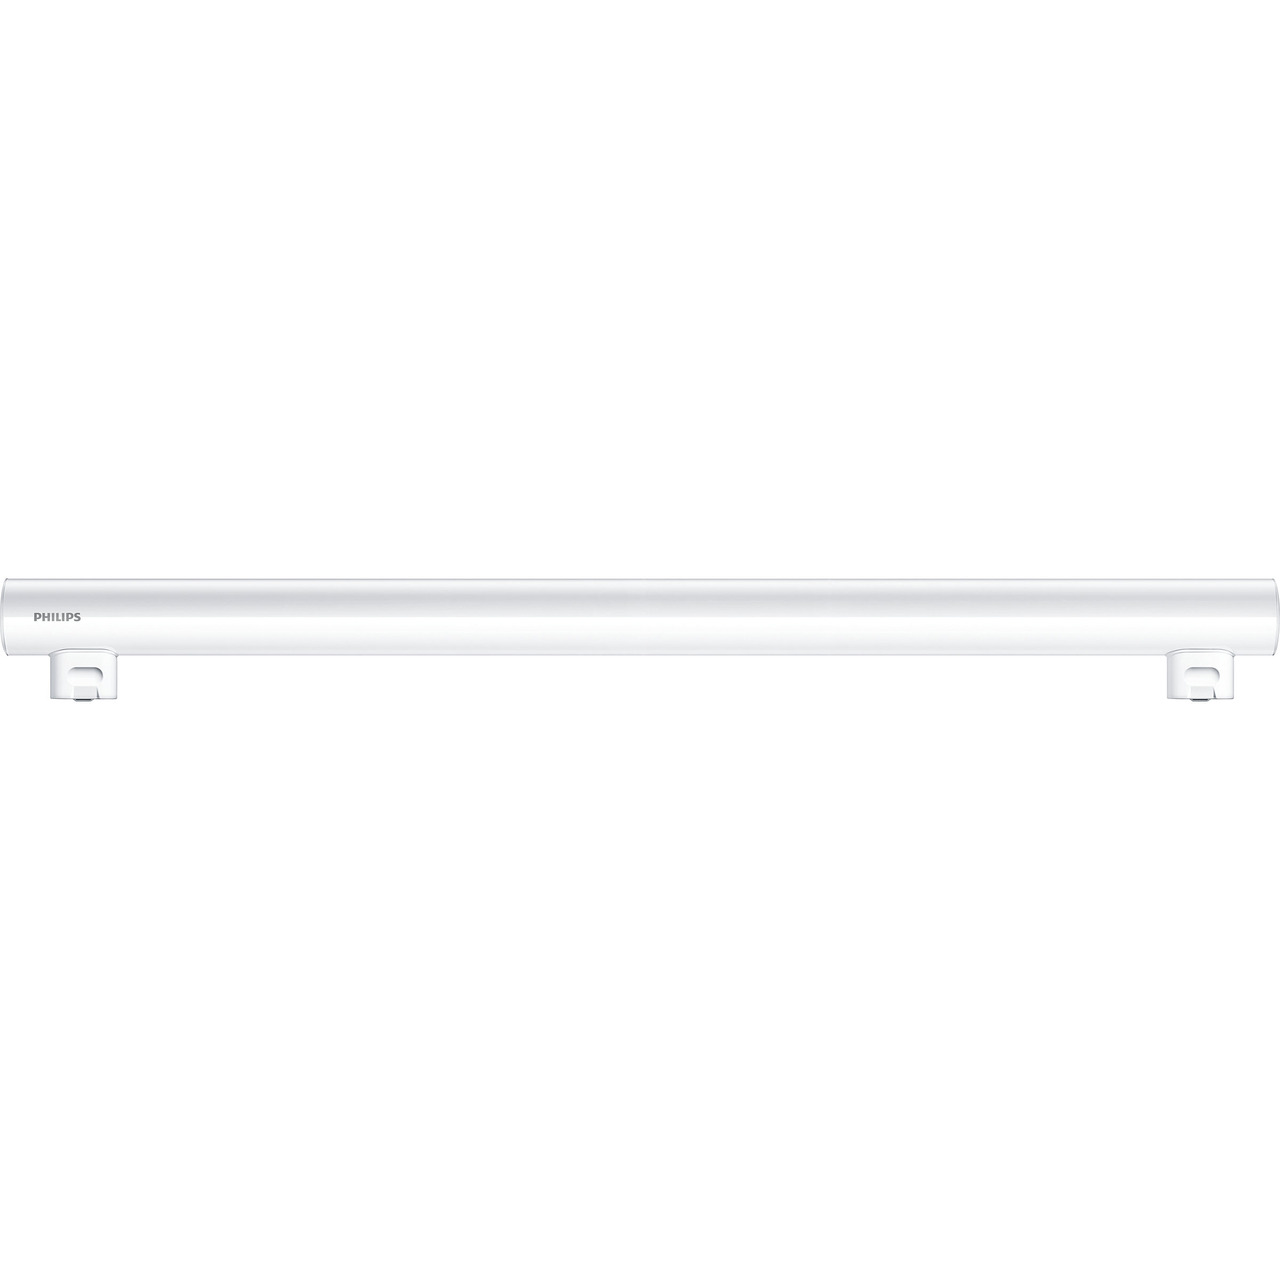 Philips 3-5-W-LED-Linienlampe PhilinealLED- 500 mm 375 lm- nicht dimmbar- warmweiss